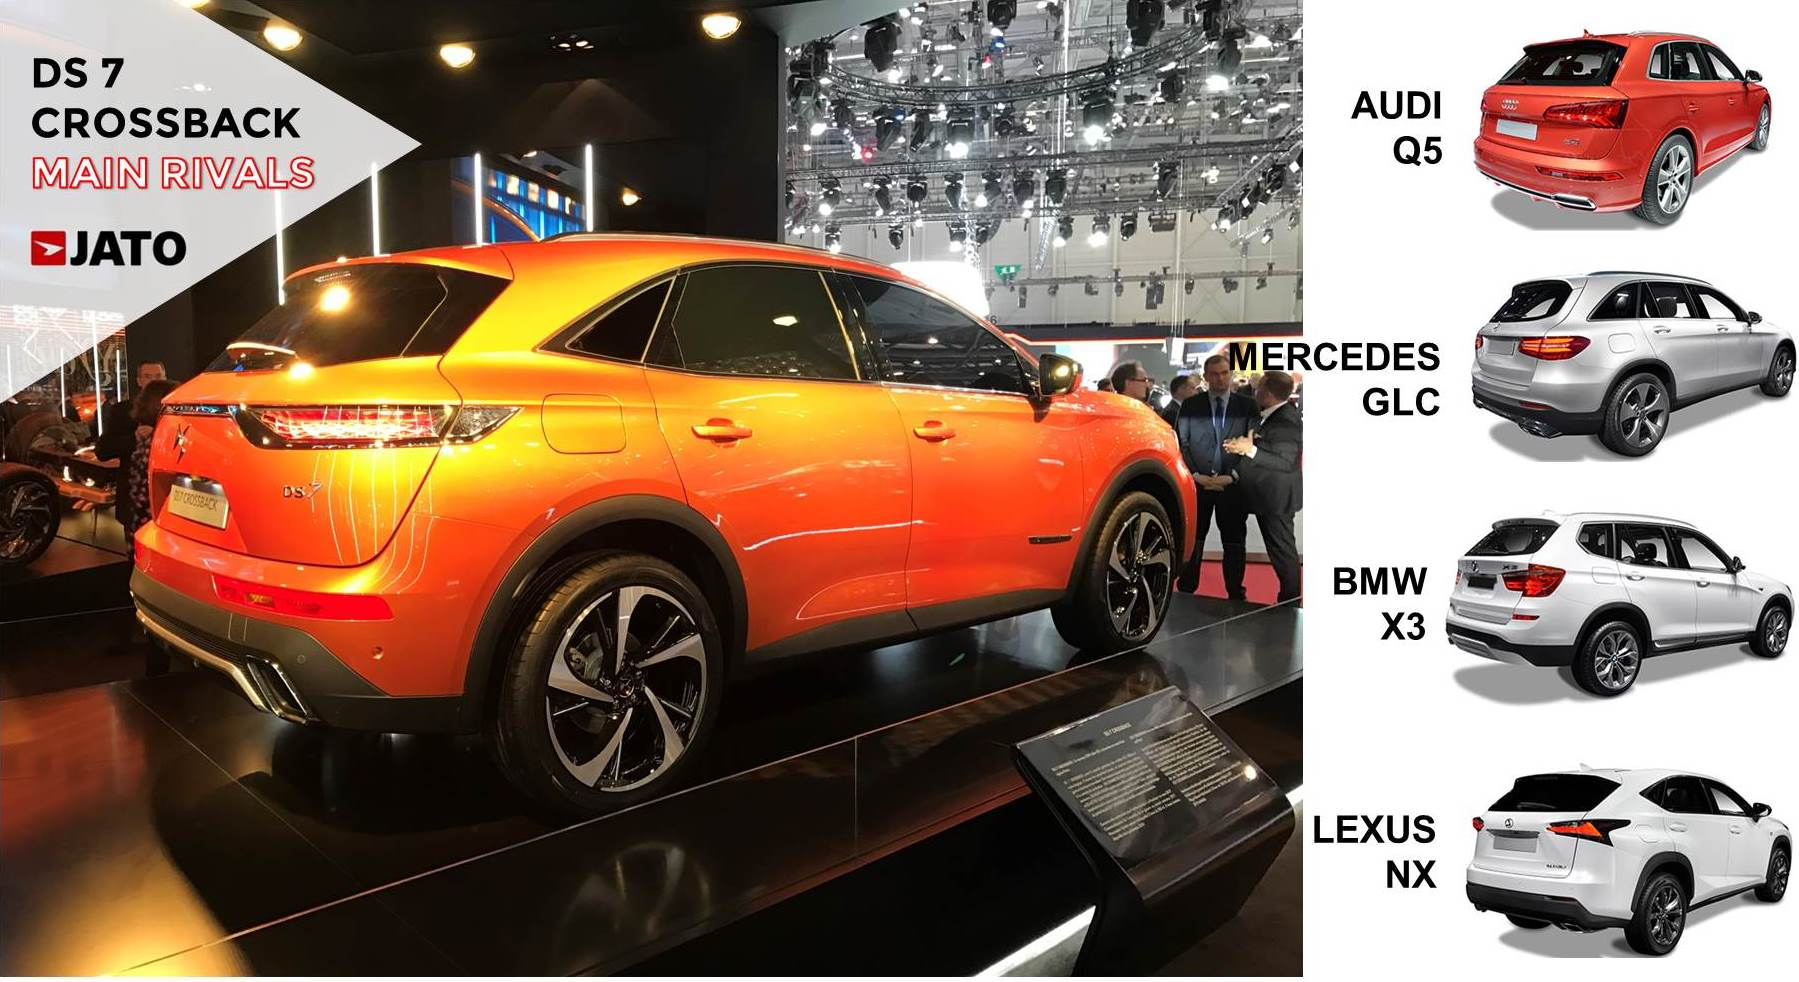 The new DS 7 Crossback will bring some oxygen to the DS brand. It is expected to gain an important position within the French premium D-SUV segment with annual sales at the level of its British rivals.